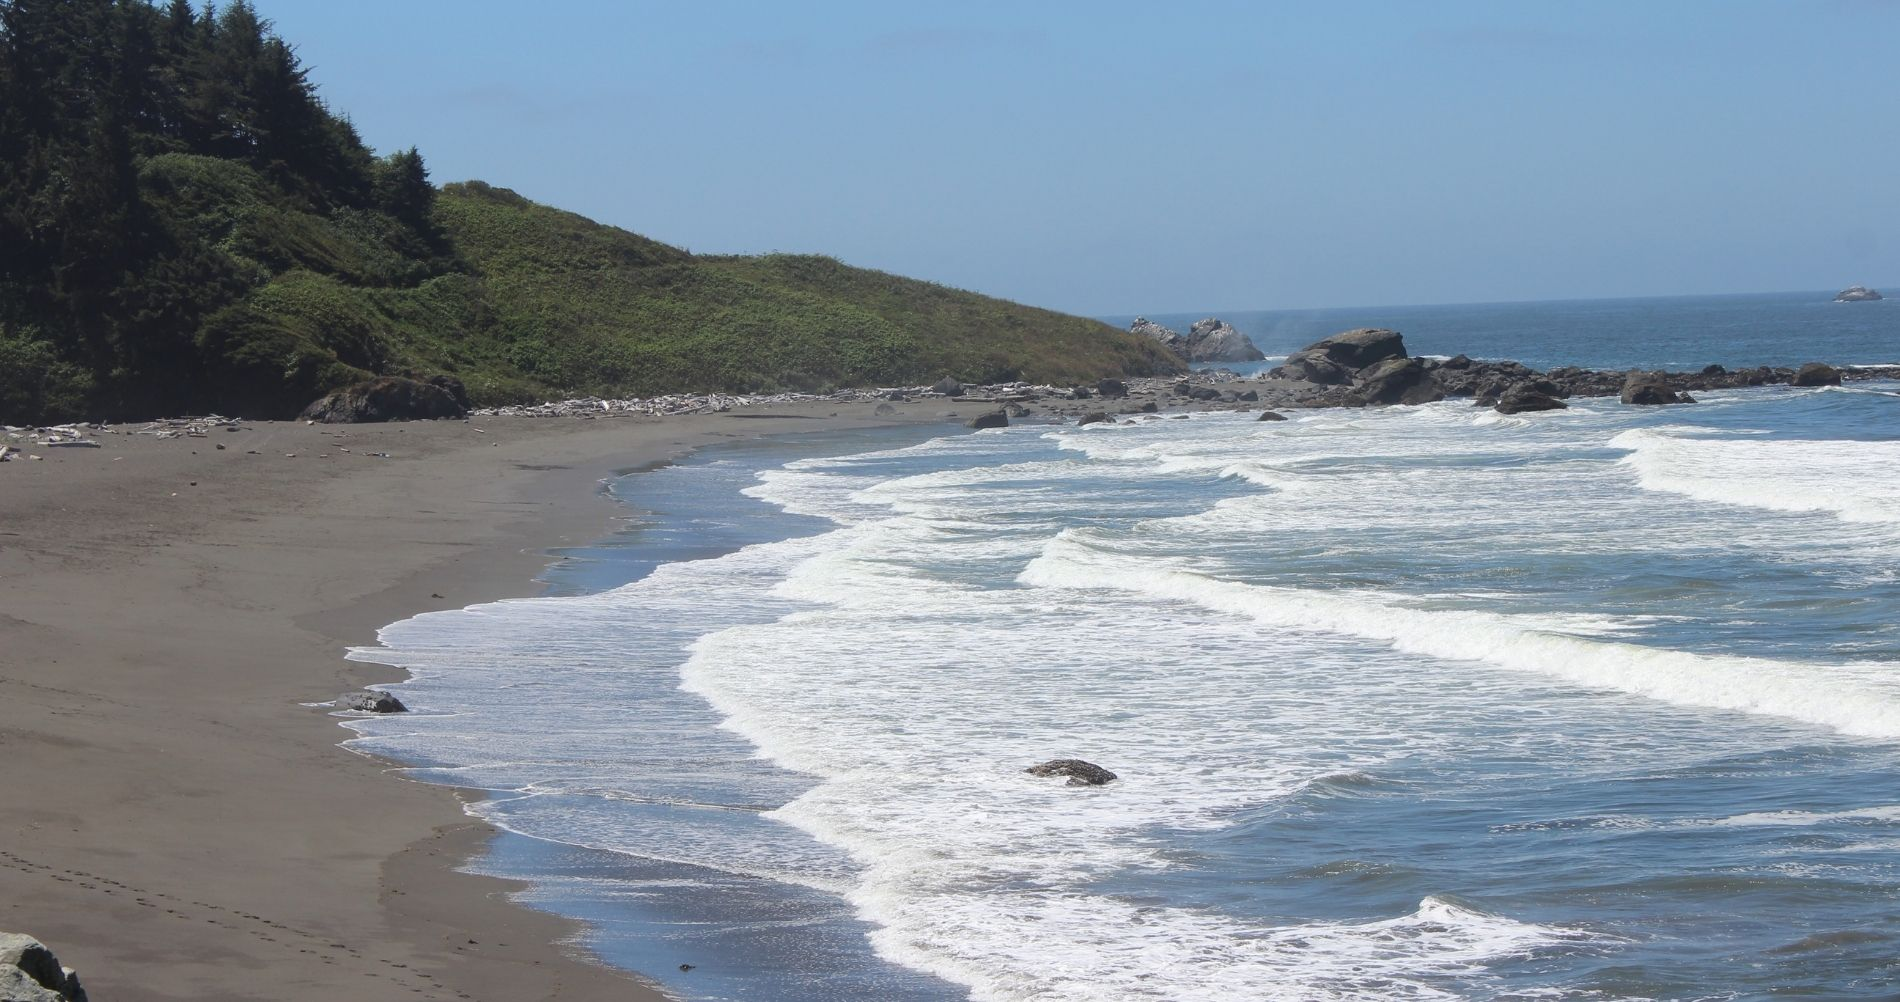 Sandy and rocky beach with winding shore along Redwood Coast CA